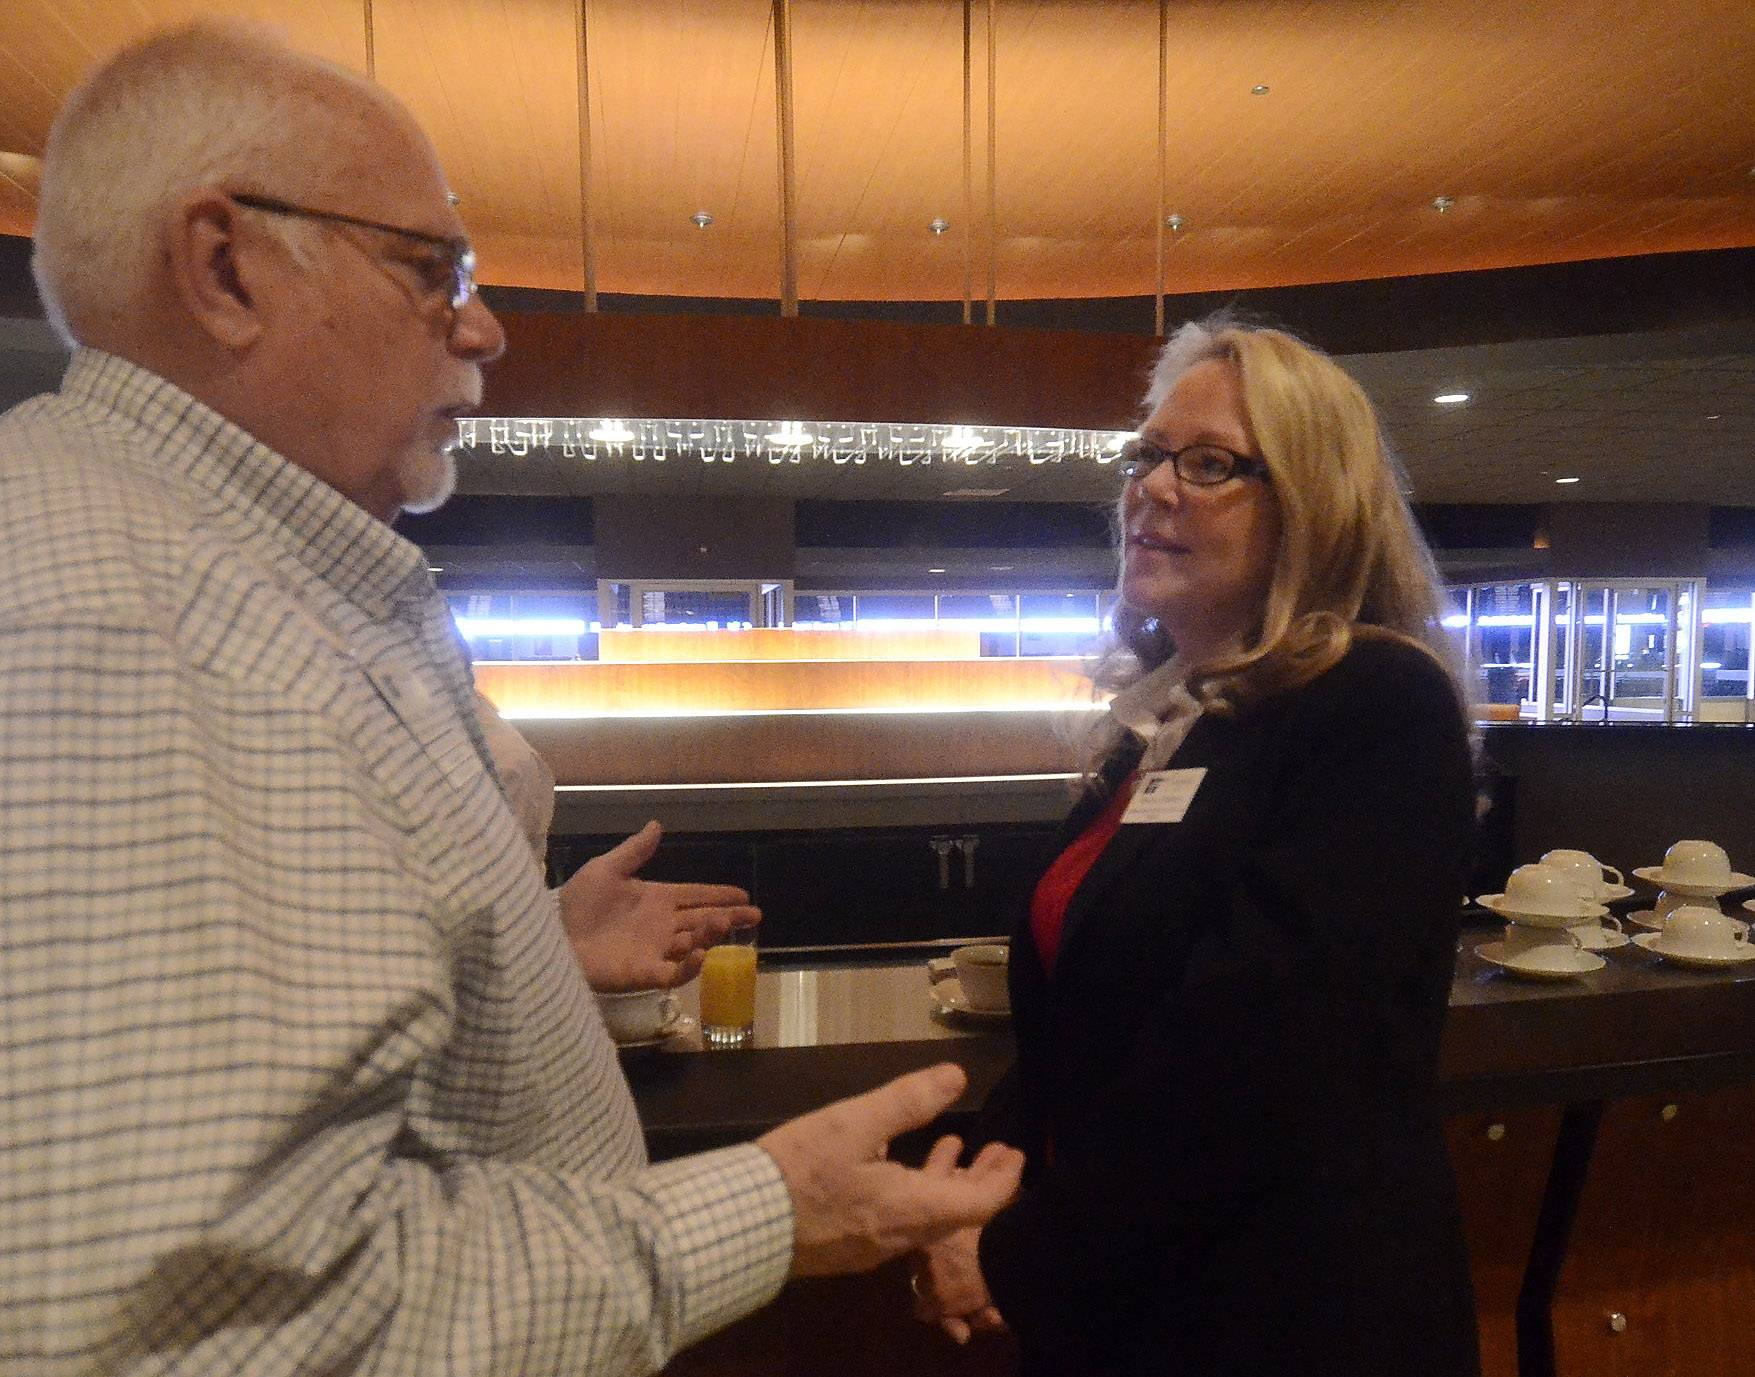 Mike Hanson of the Hoffman Estates Chamber of Commerce talks with Tricia O'Brien, president of the Hoffman Estates Chamber of Commerce, before Hoffman Estates Mayor Bill McLeod's Community Update breakfast Wednesday at the Sears Centre Arena Club.